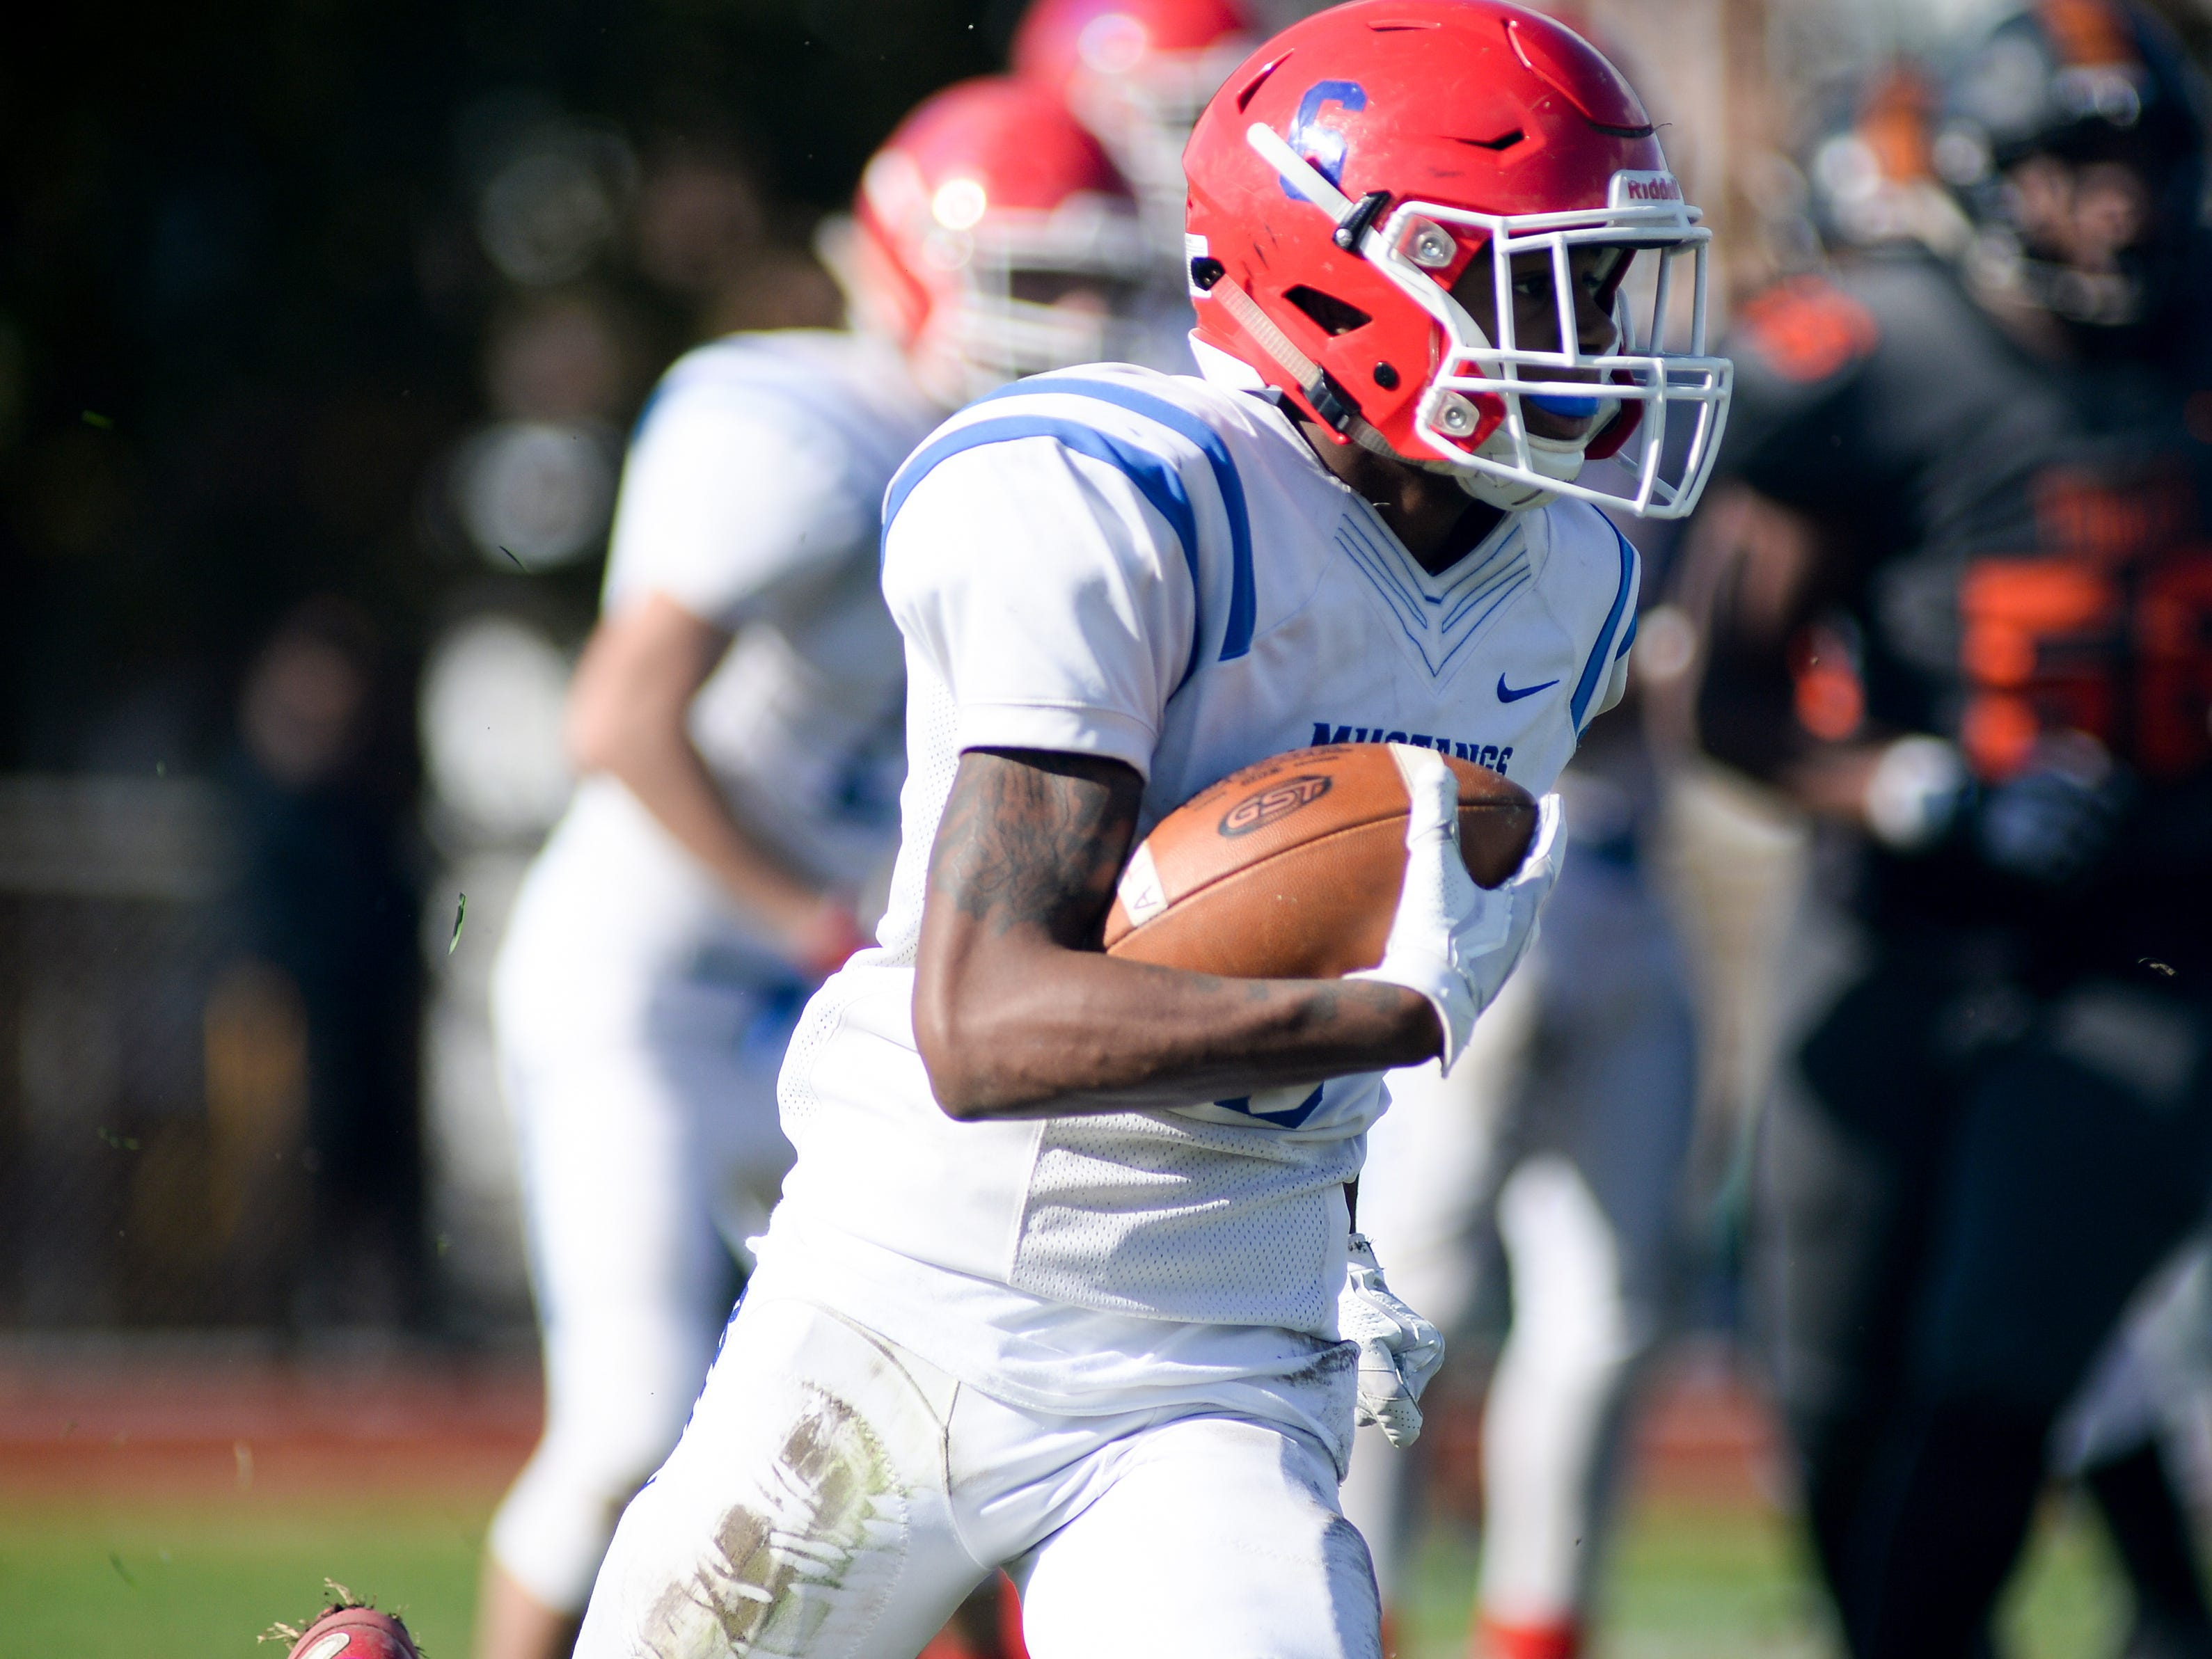 Triton's Davaun Payton carries the ball against Woodrow Wilson during Saturday's South Jersey Group 3 first round game at Woodrow Wilson High School, Nov. 3, 2018.